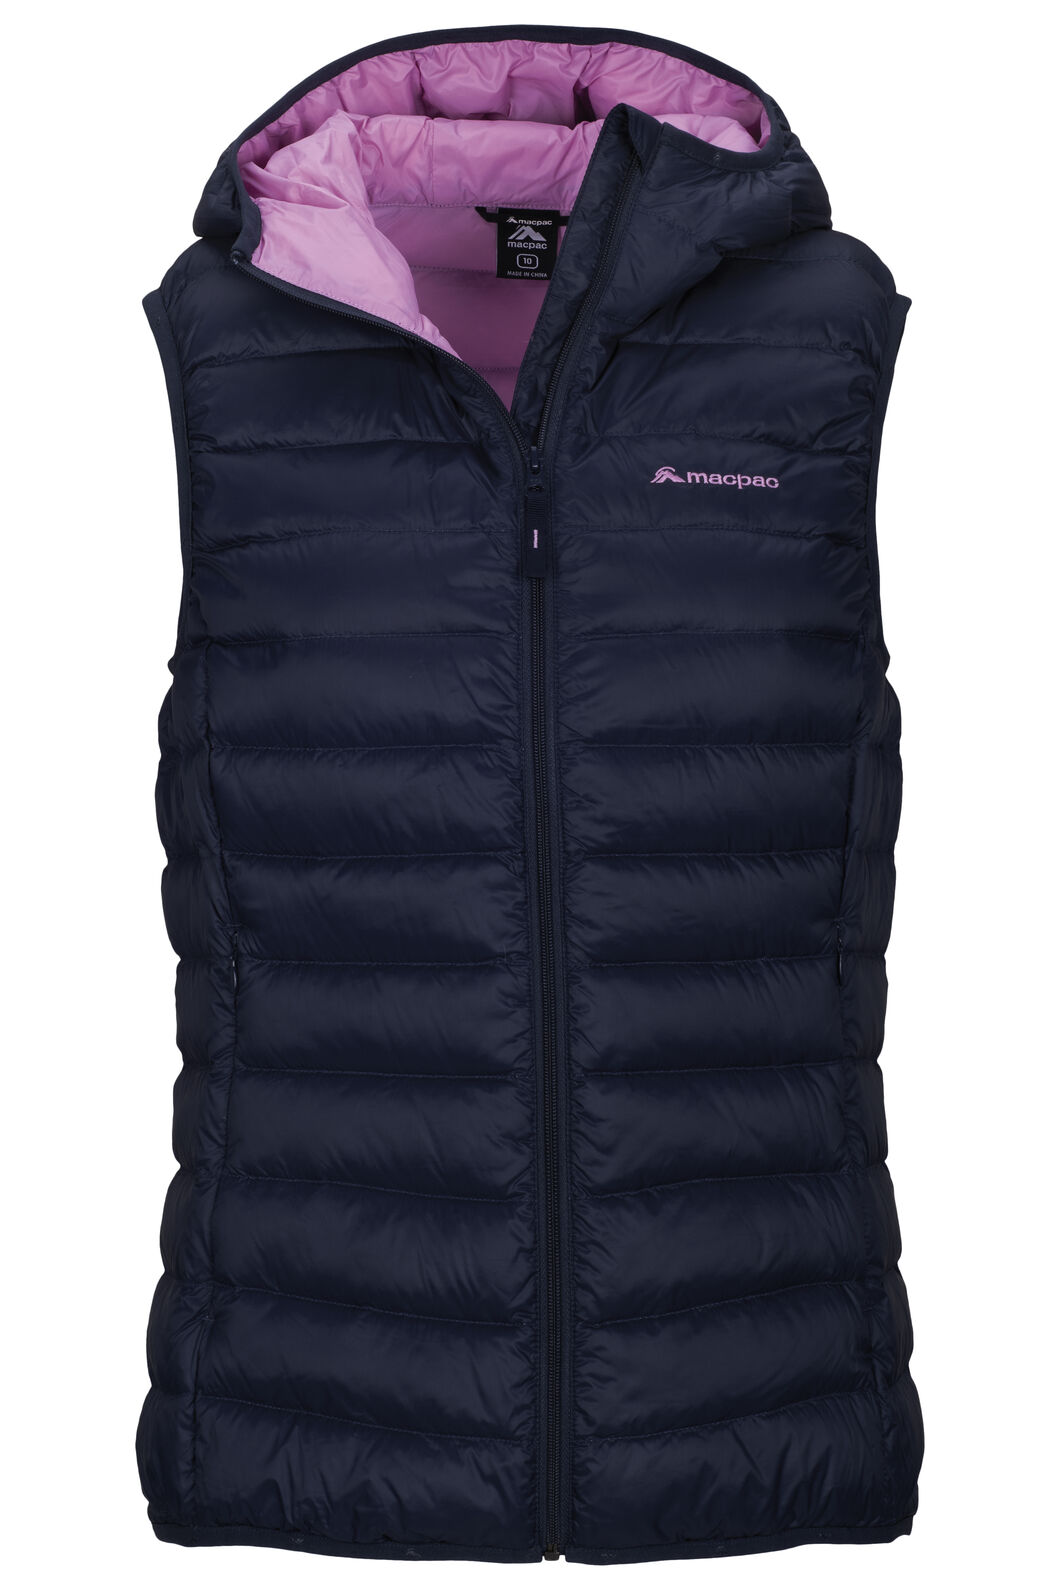 Macpac Uber Light Hooded Down Vest — Women's, Total Eclipse, hi-res